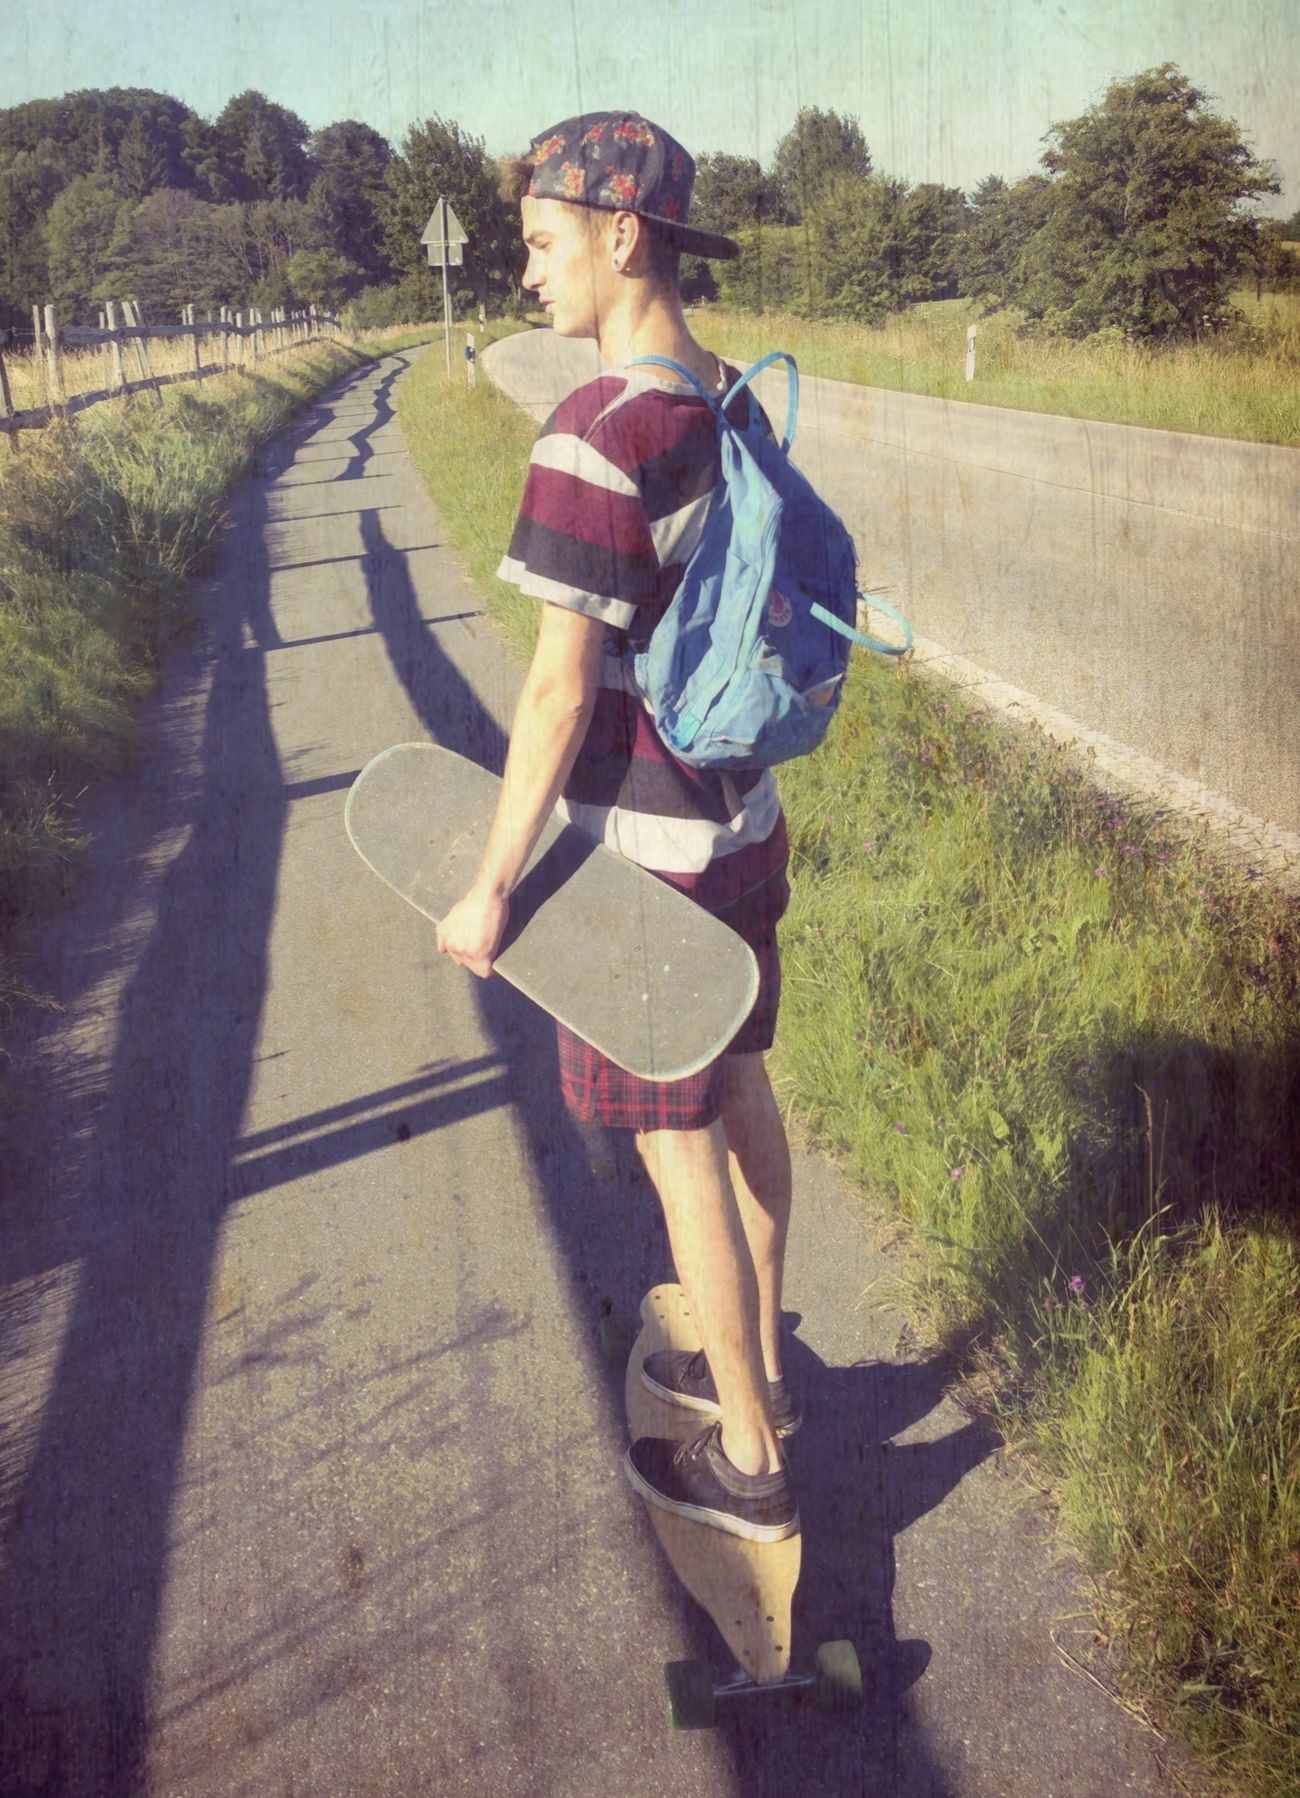 ♡ Longboarding Skateboarding Nature Love